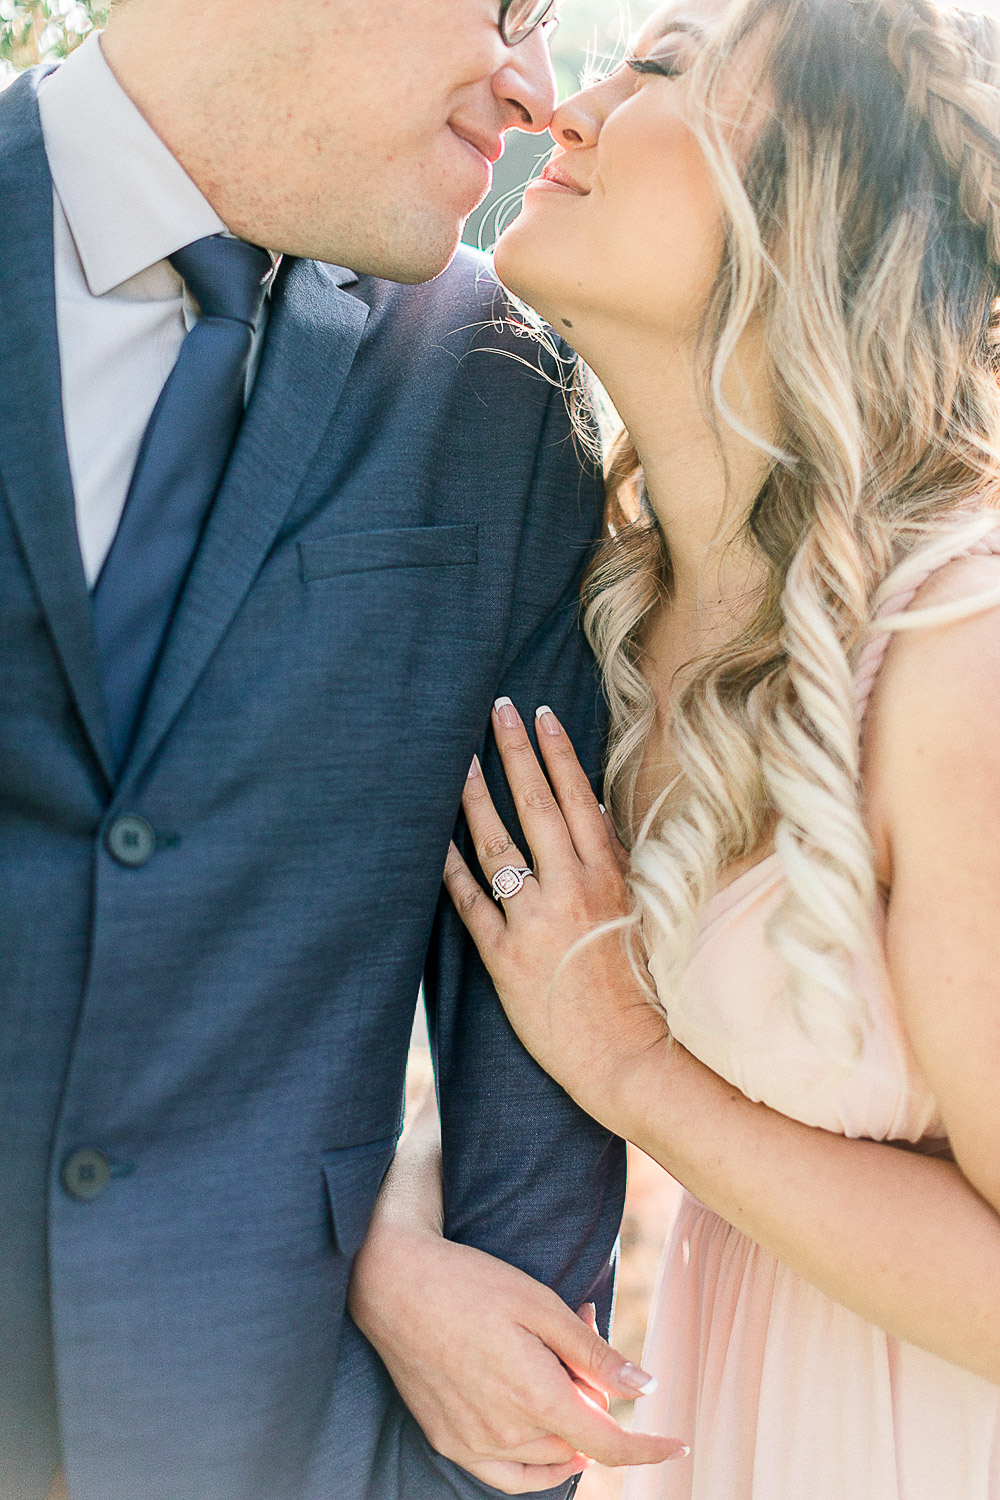 27-La Jolla_Cove_Beach_Engagement_San_Diego_Wedding_Photographer_KristineMariePhotography_Angela-Fernando